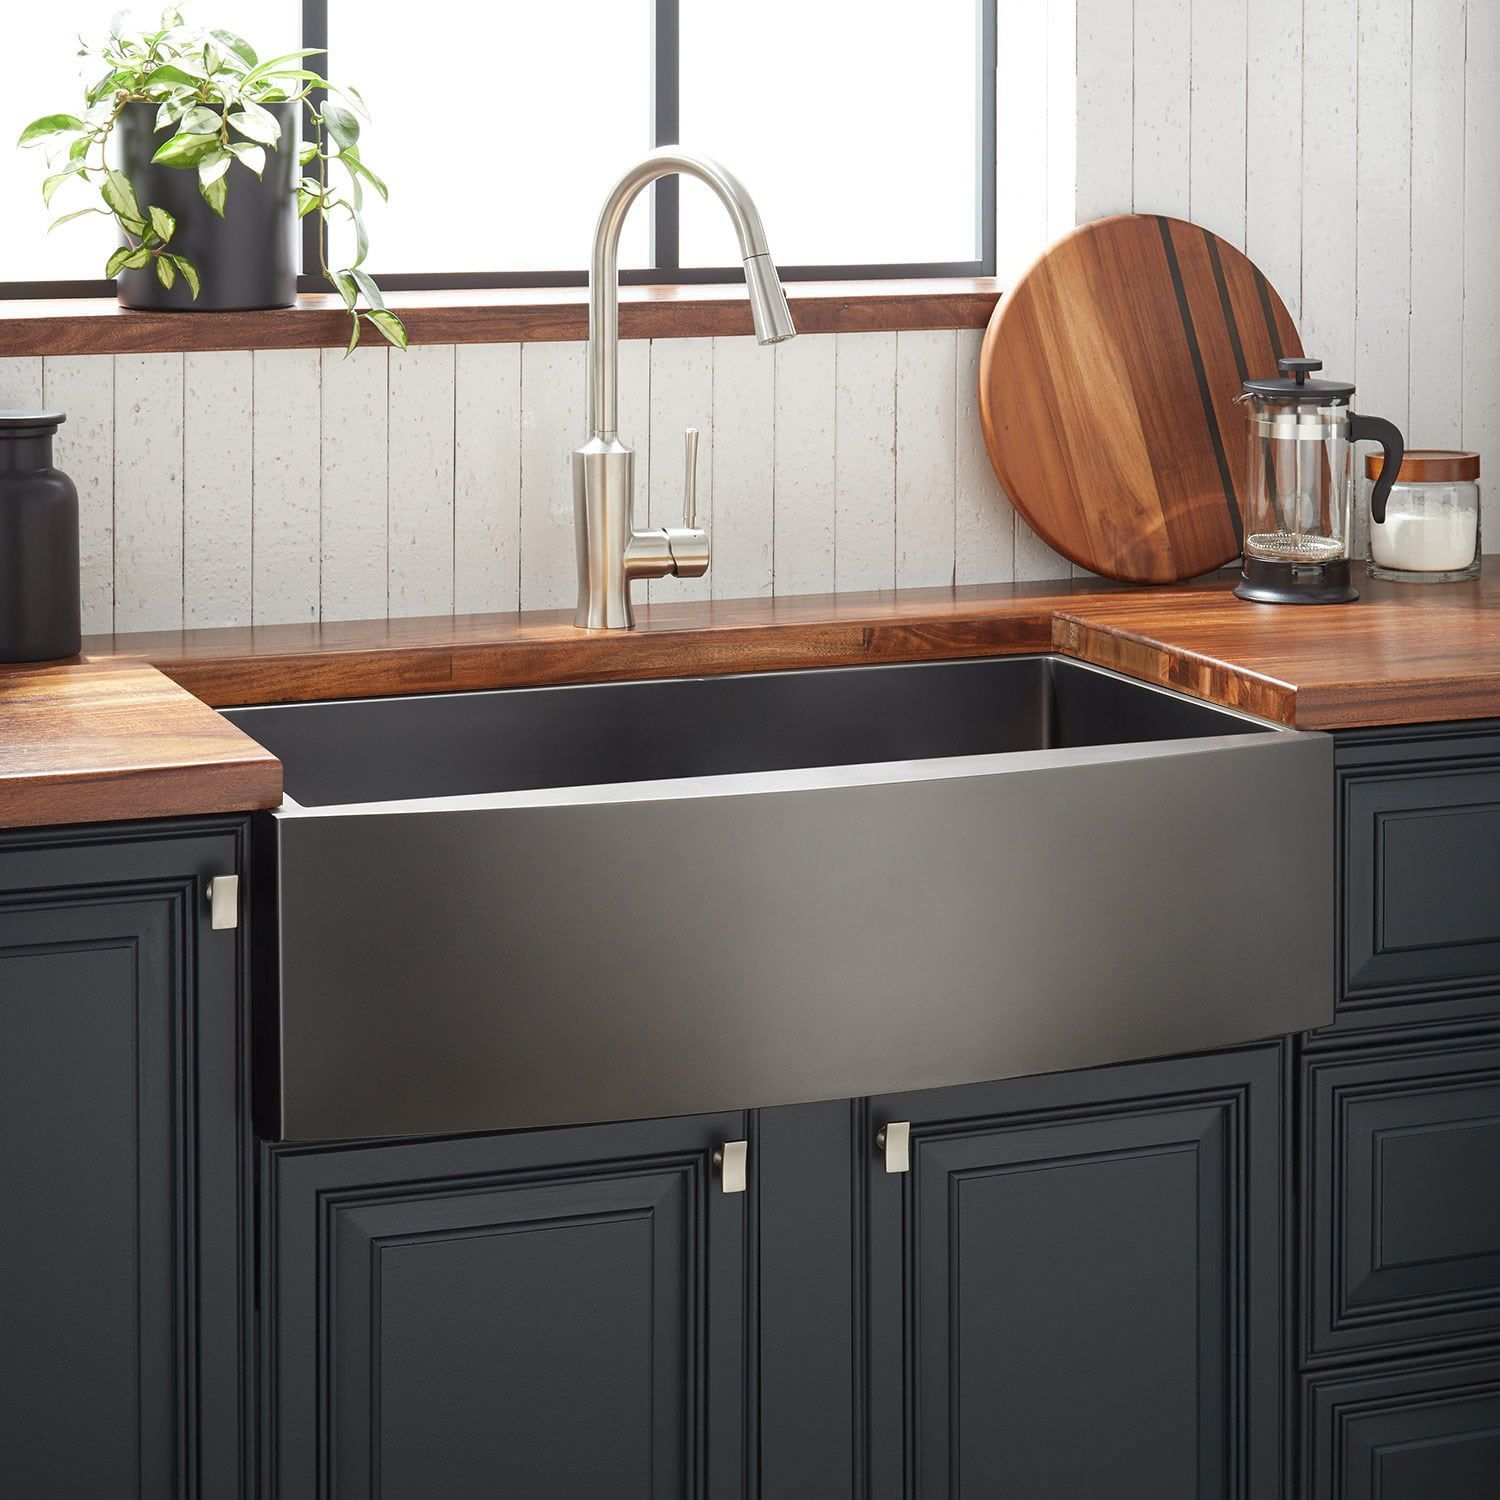 30 Atlas Stainless Steel Farmhouse Sink Curved Apron Gunmetal Black Apron A In 2020 Stainless Steel Farmhouse Sink Farmhouse Sink Kitchen Black Farmhouse Sink